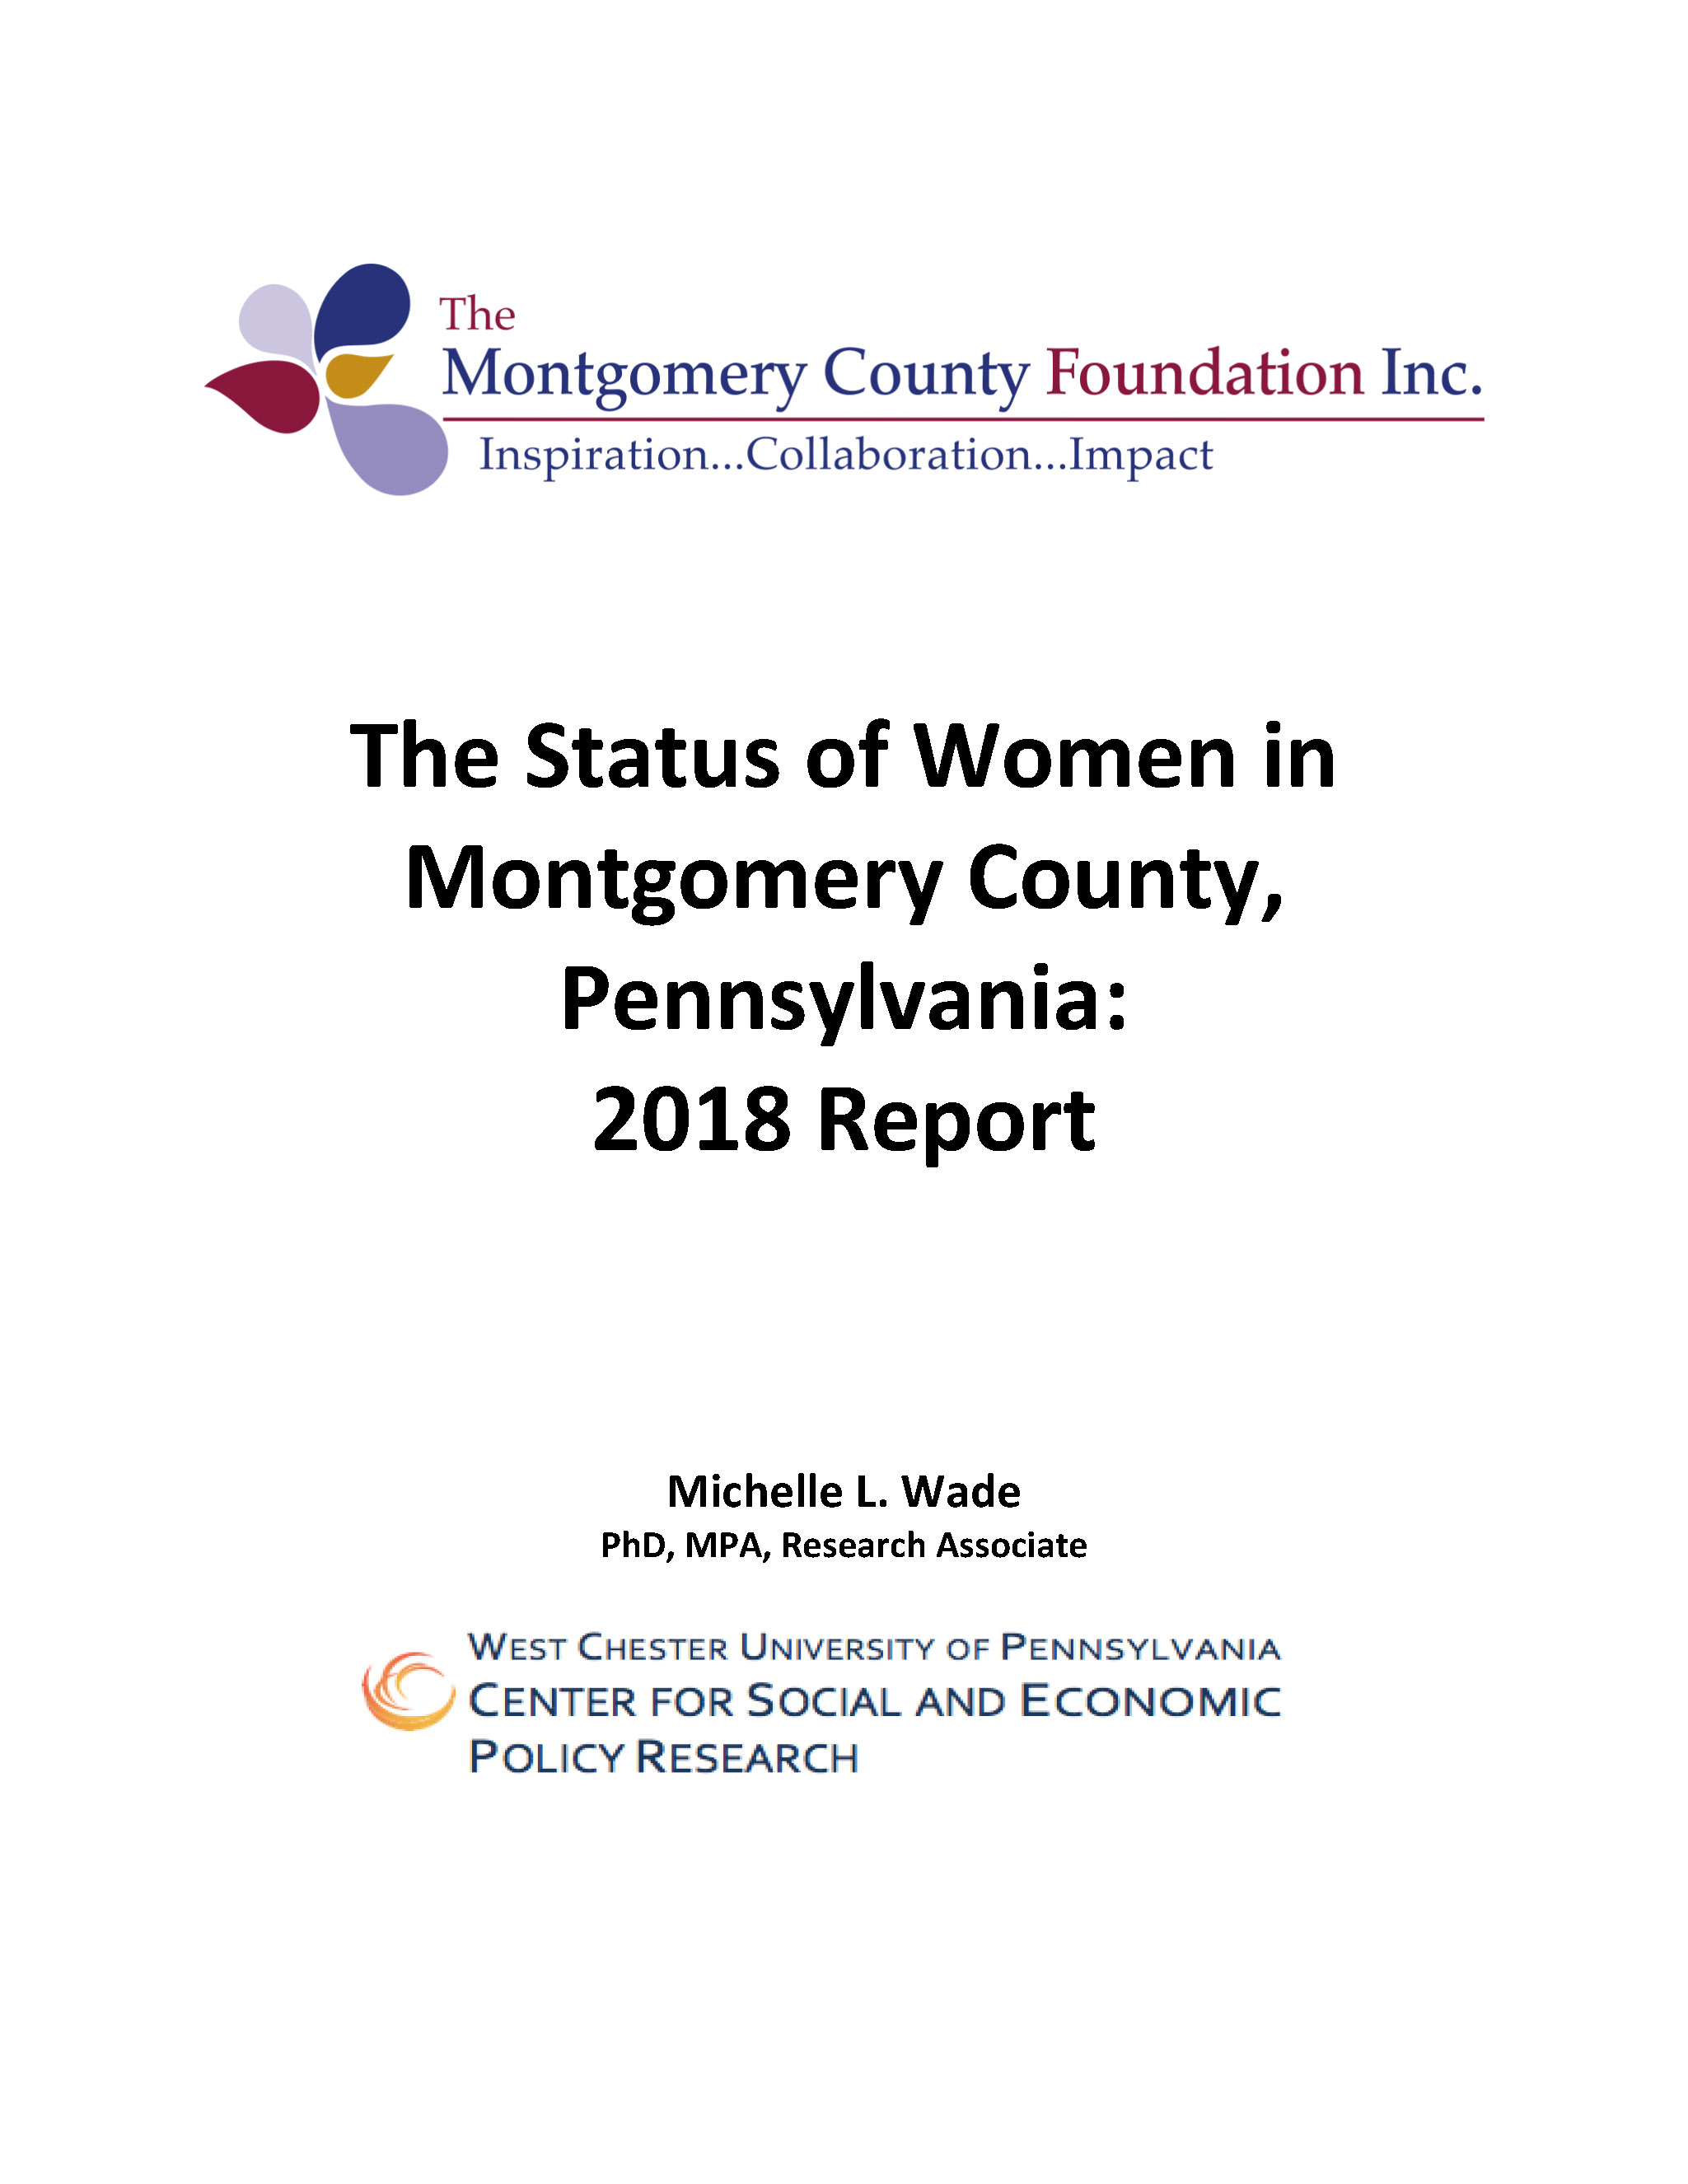 The Status of Women in Montgomery County, PA